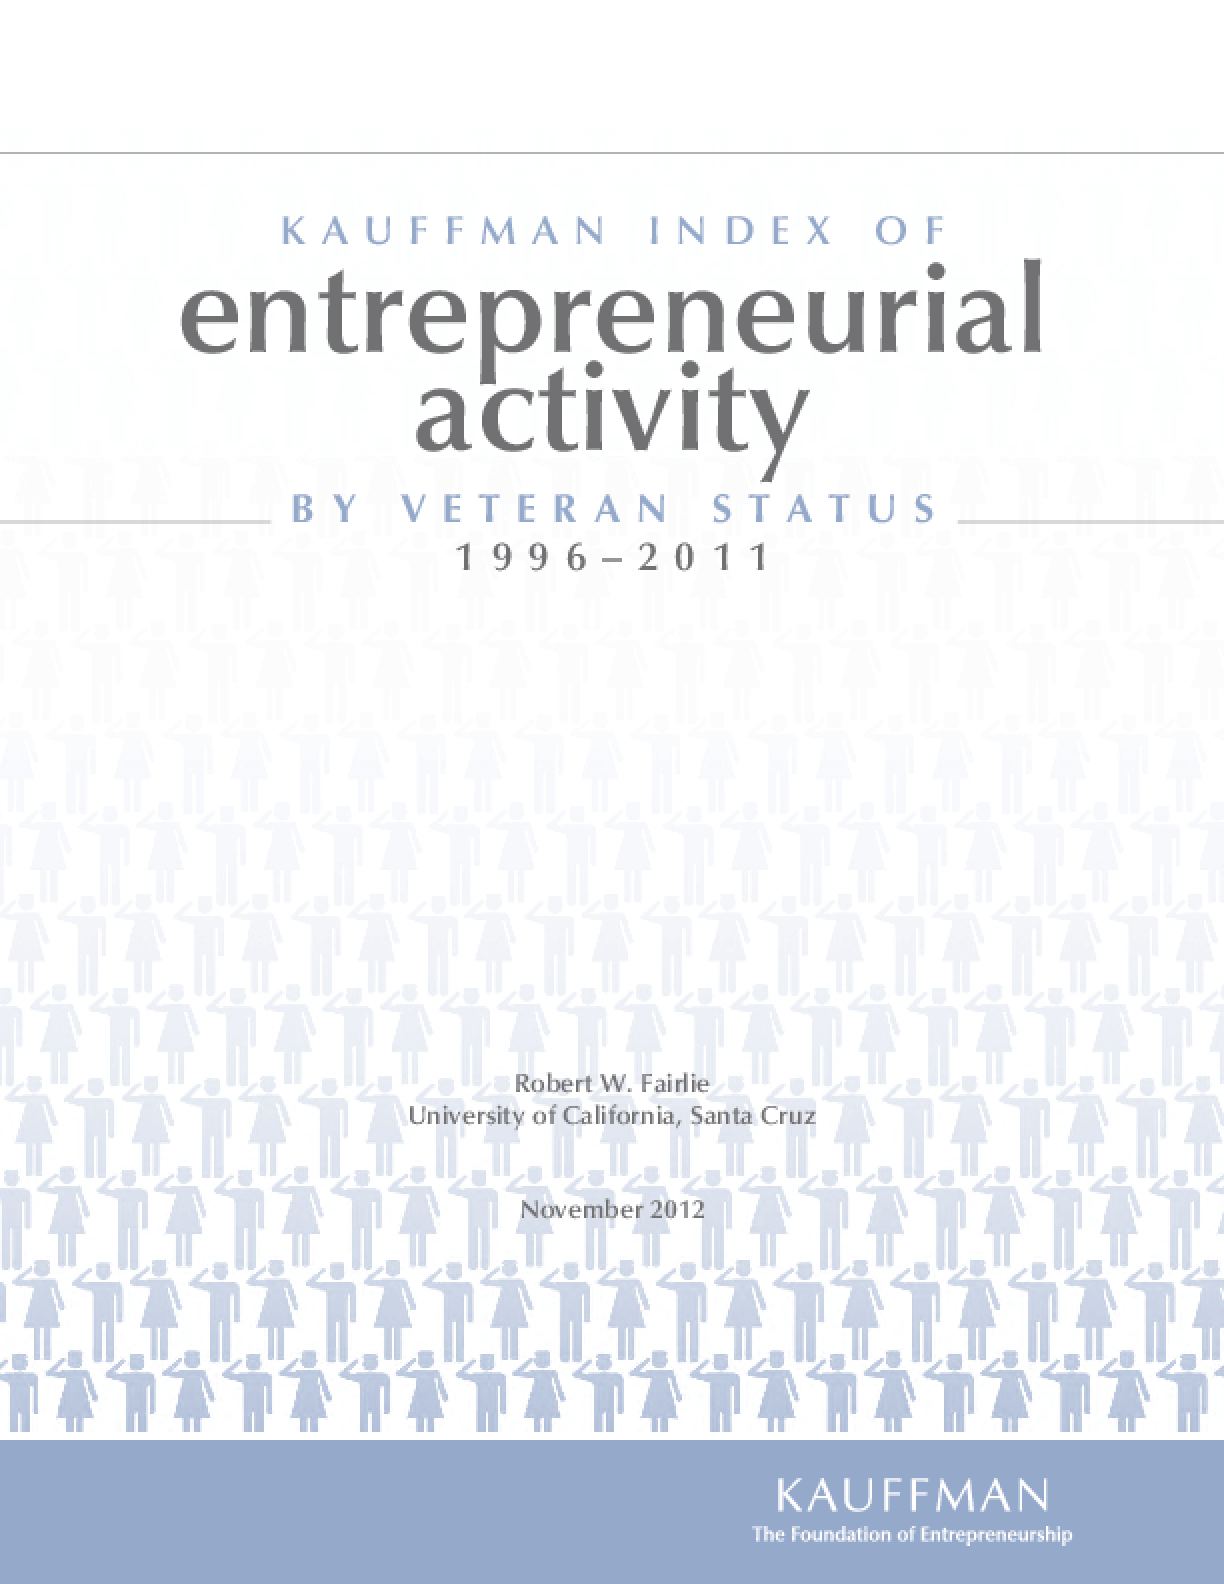 The Kauffman Index of Entrepreneurial Activity (KIEA) by Veteran Status: 1996-2011